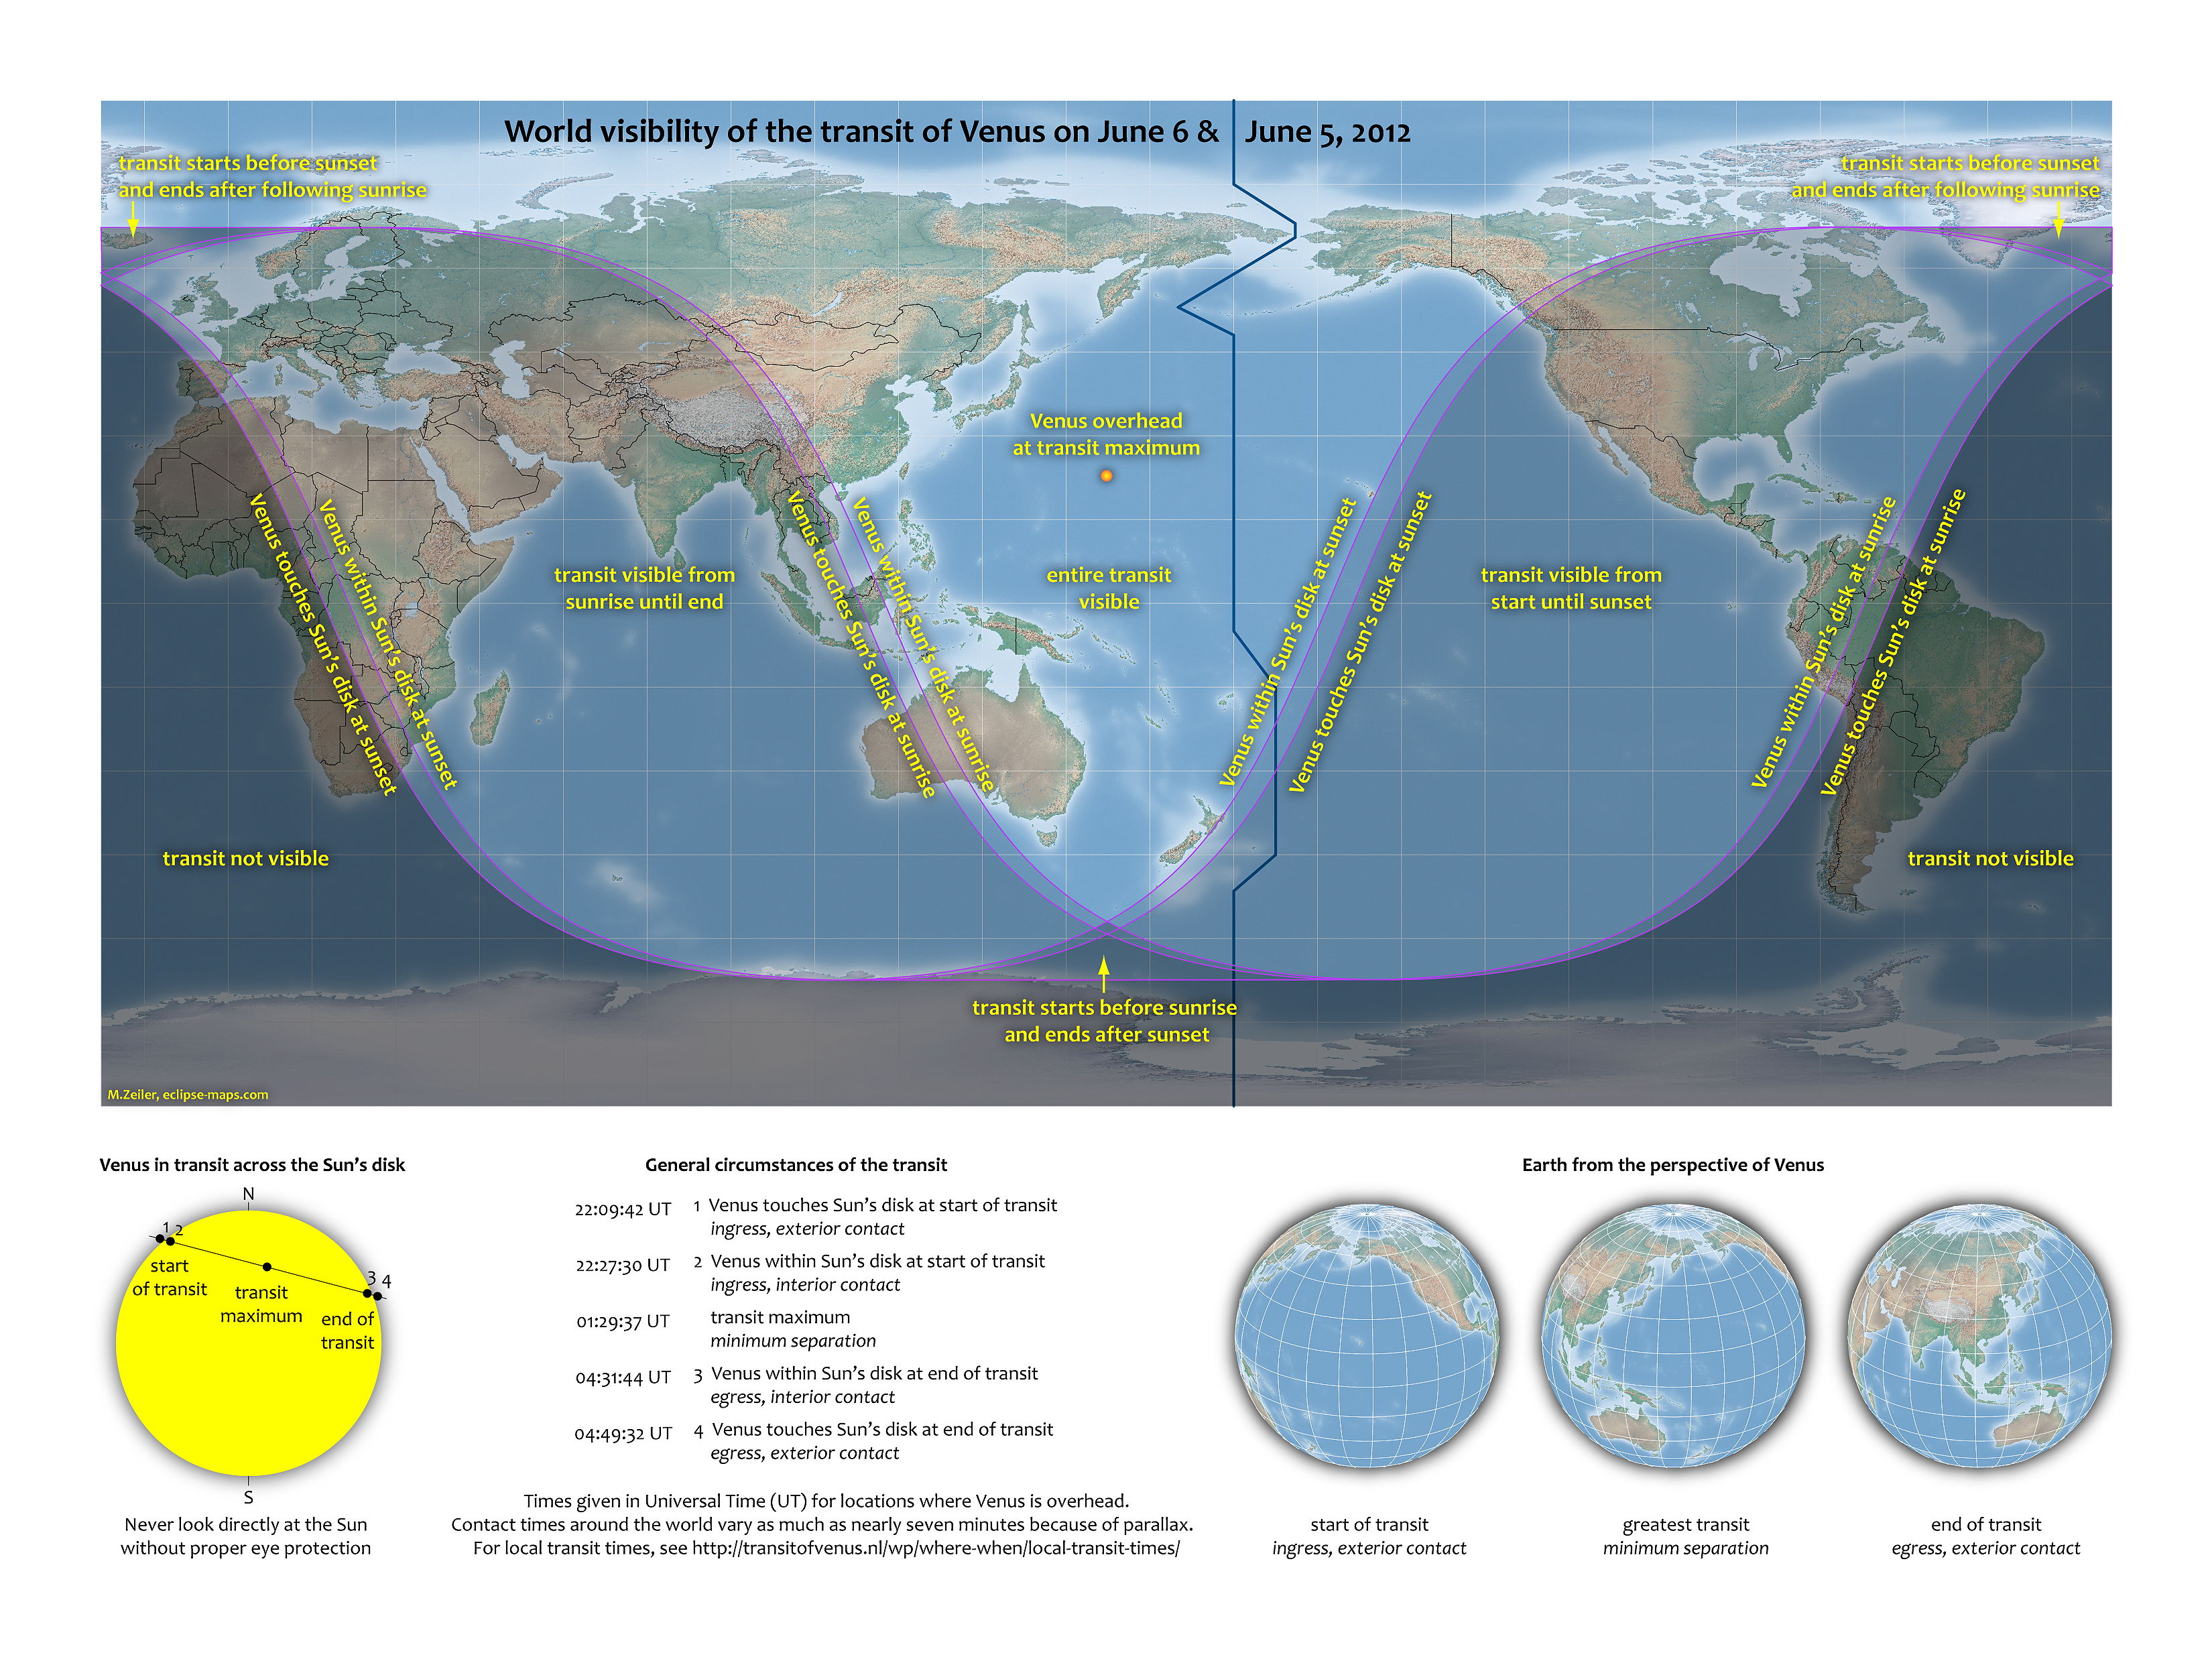 Venus Transit Visibility World Map | NASA on intelligence world map, fire emblem awakening world map, eclipse world map, chrono trigger world map, java world map, tigress world map, niantic intel map, nestle world map, tiger world map, android world map, inverse world map,